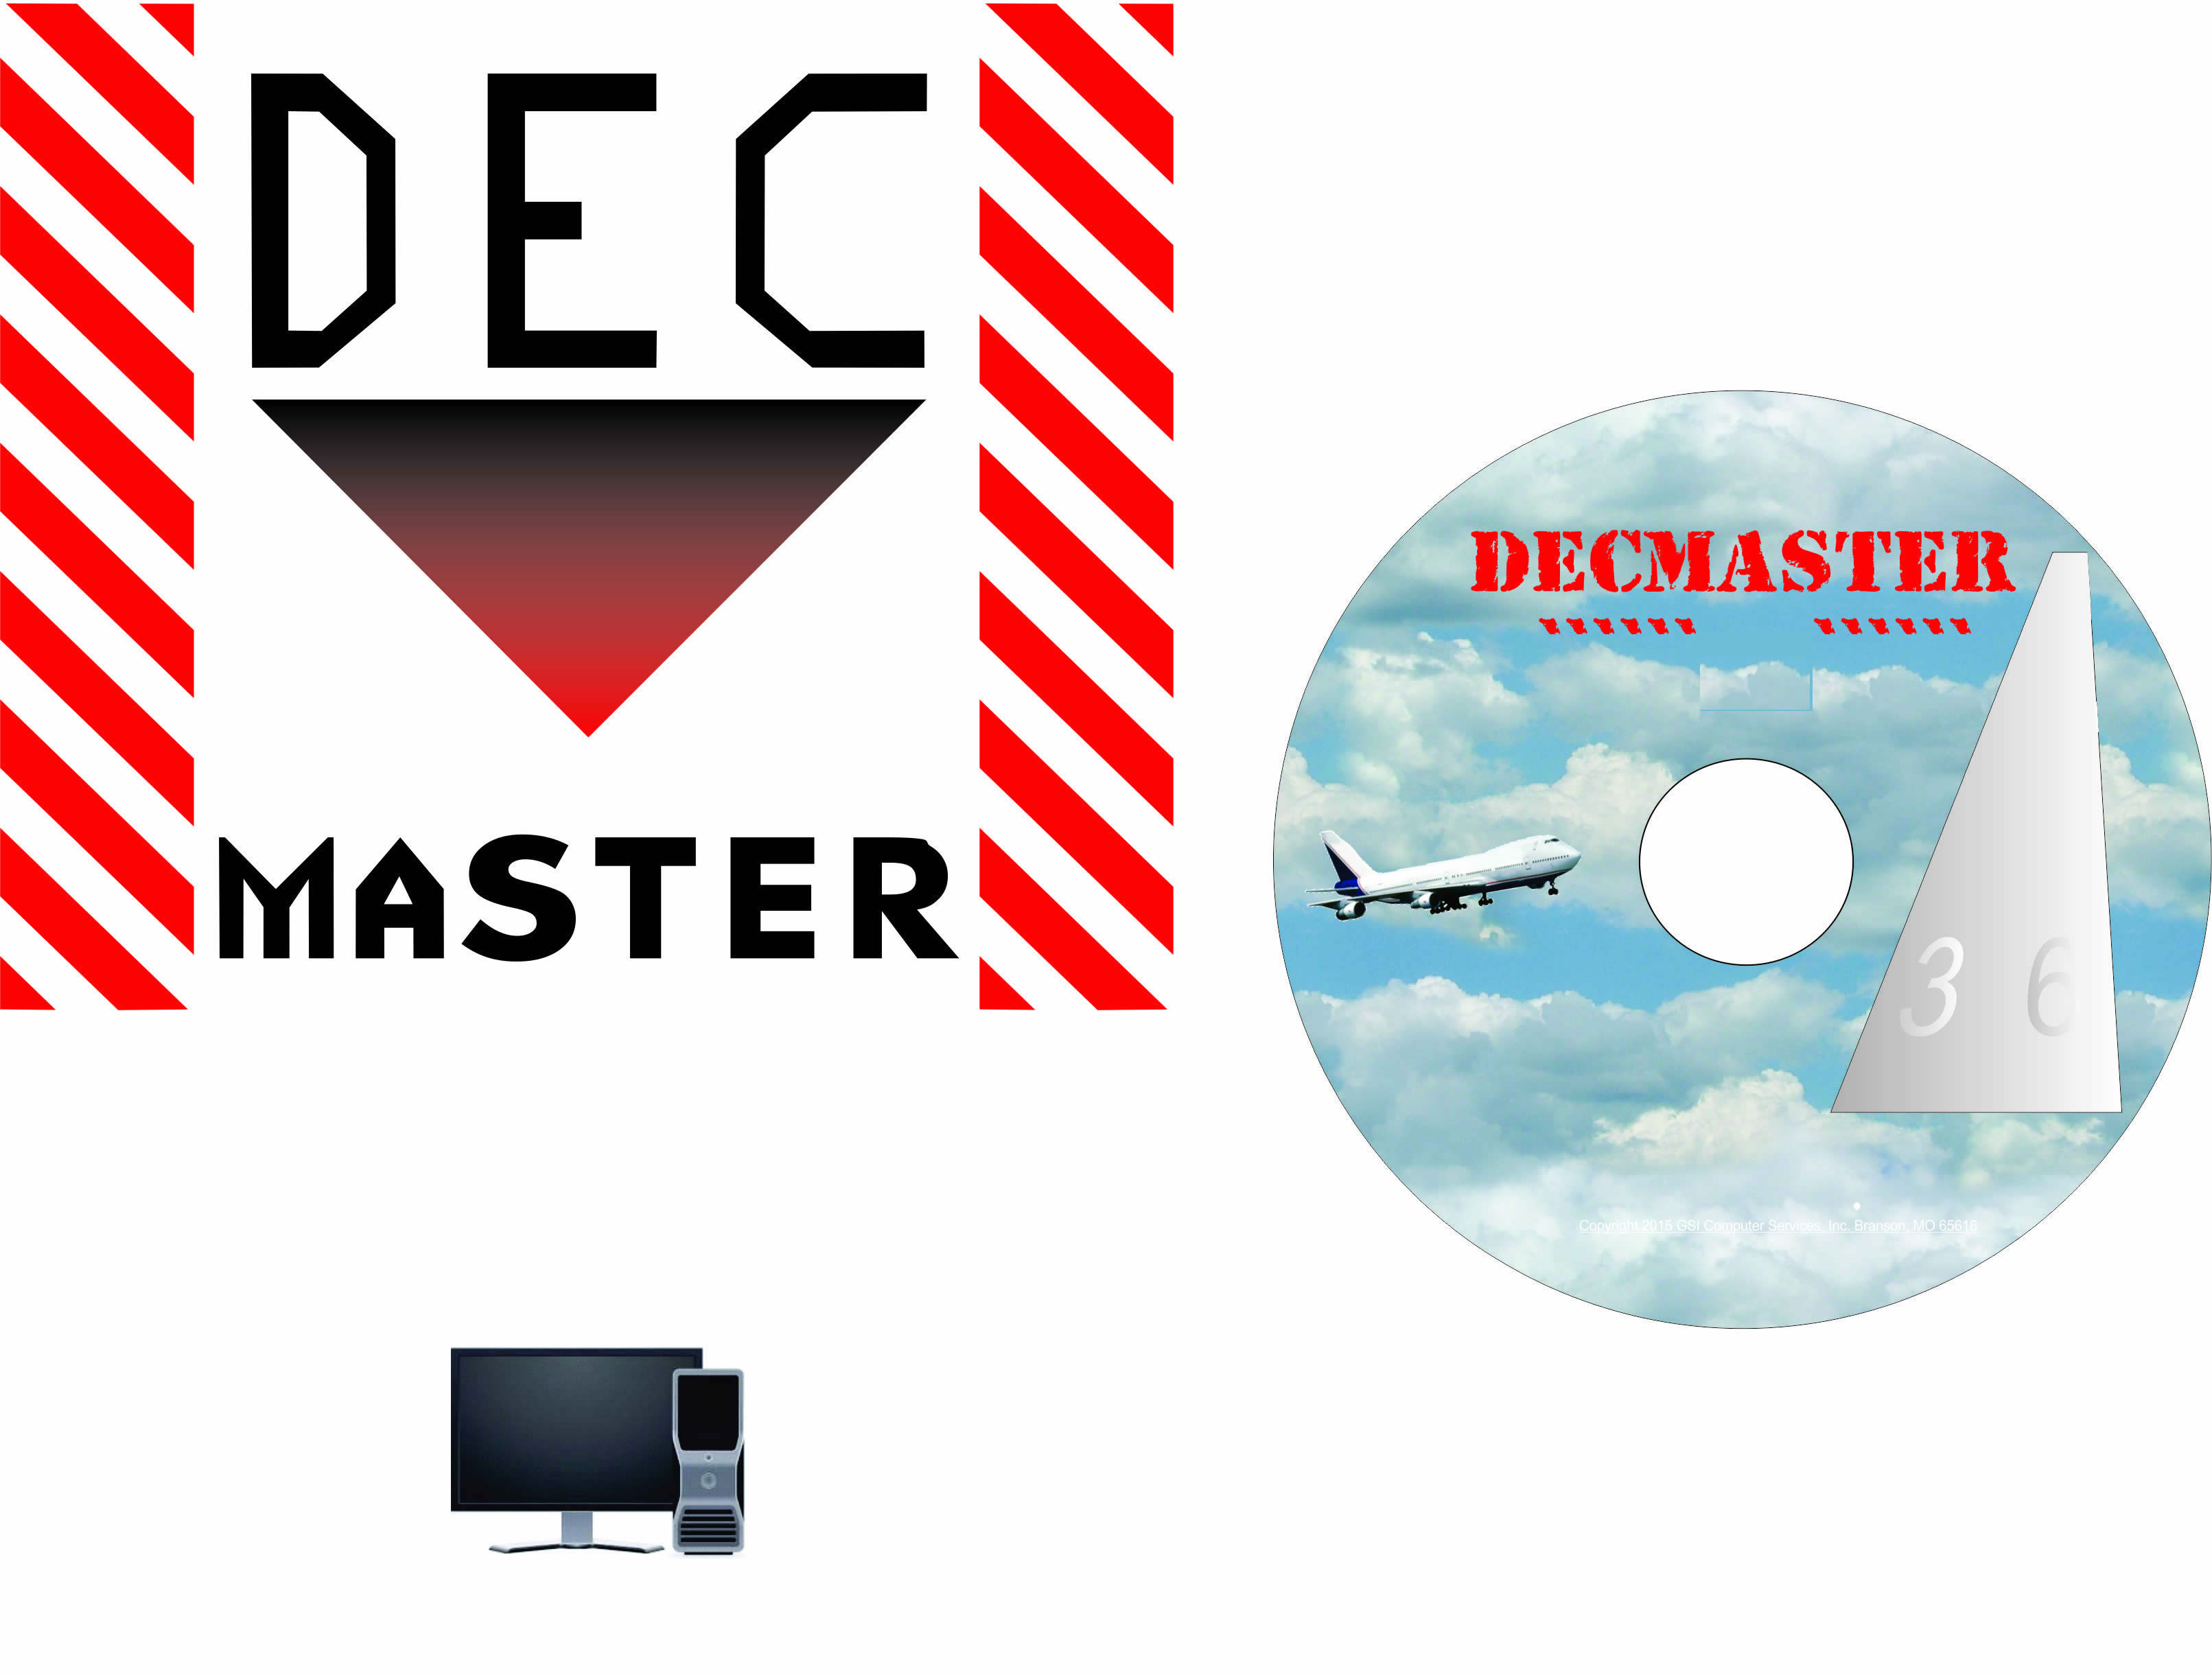 Dec Master Shipper's Declaration of Dangerous Goods (DGD) software